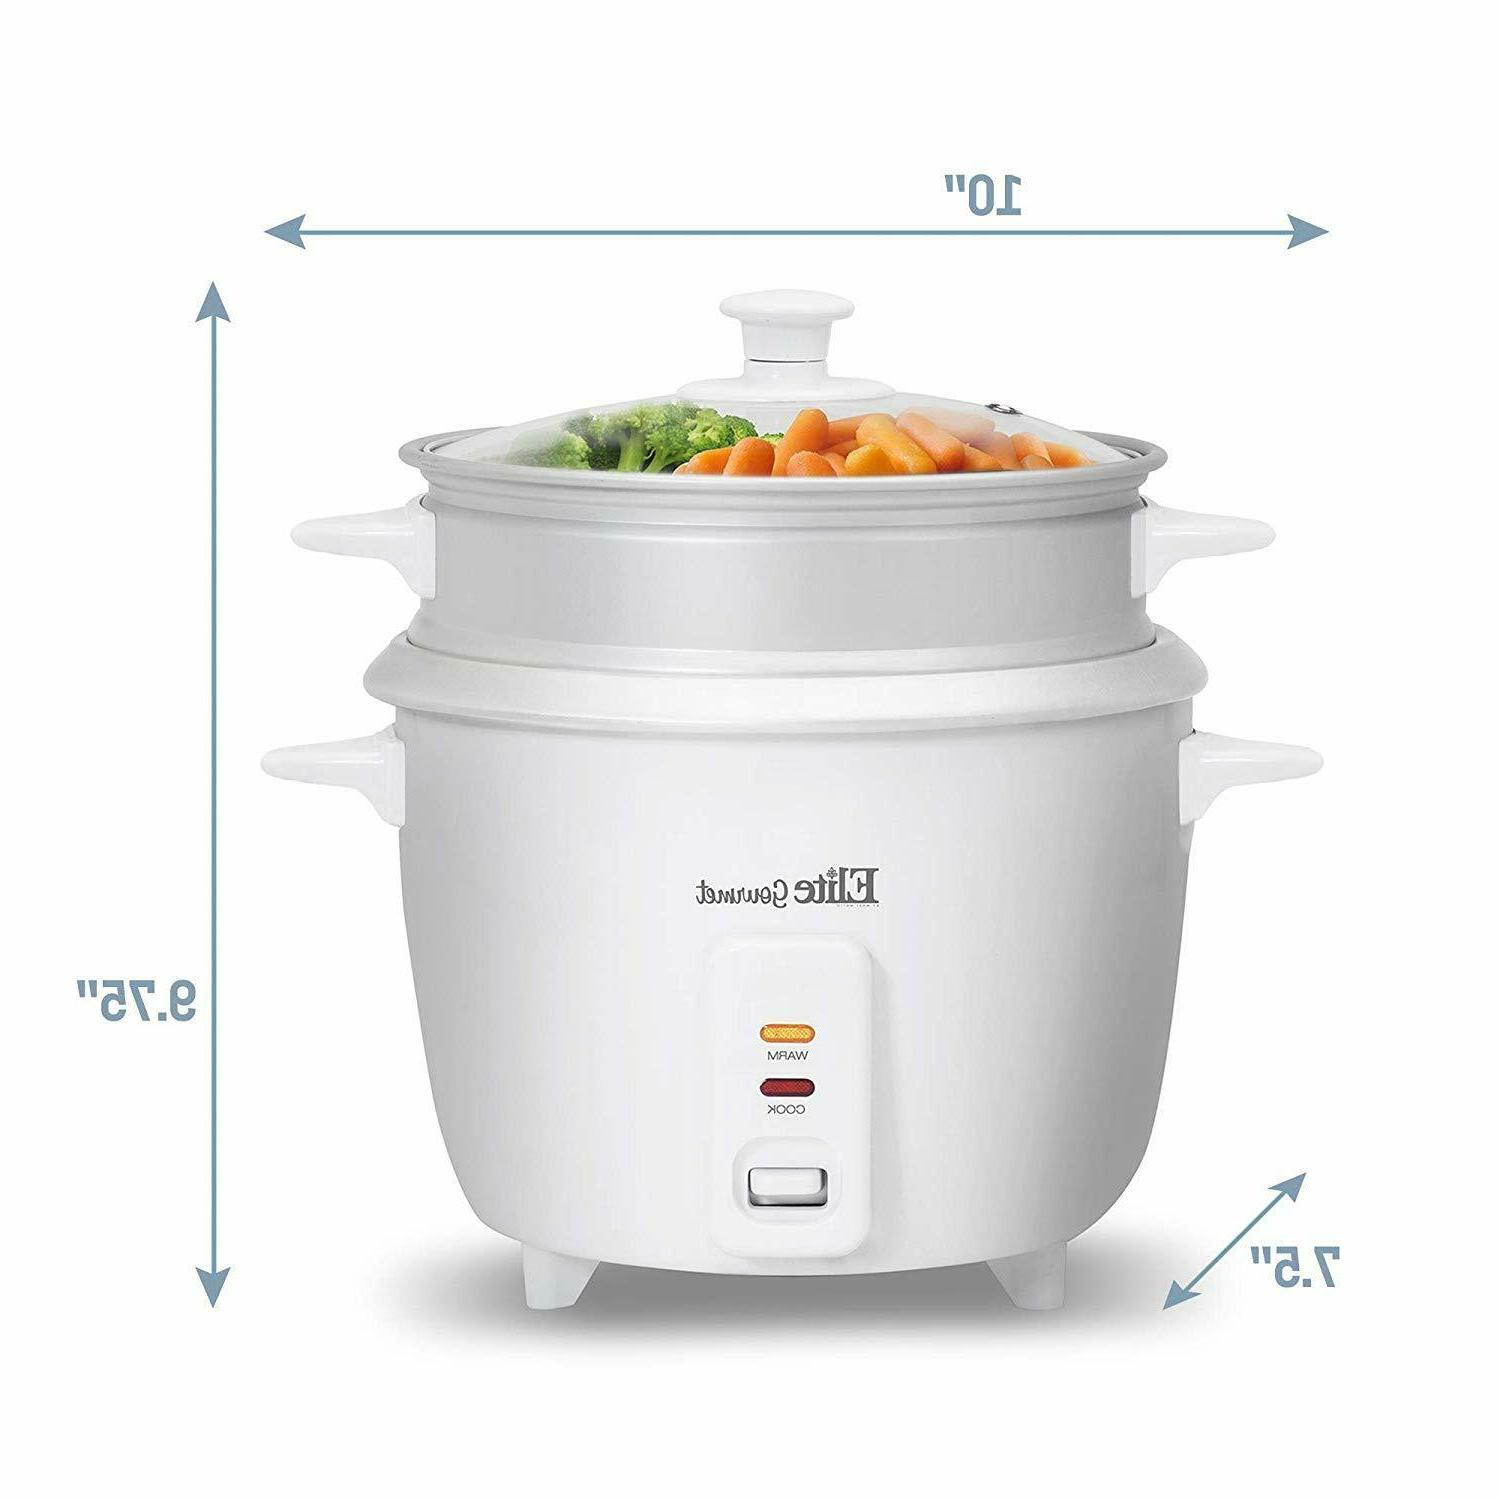 6 Cup Rice with Steamer Automatic Warm Makes Stews, Grains